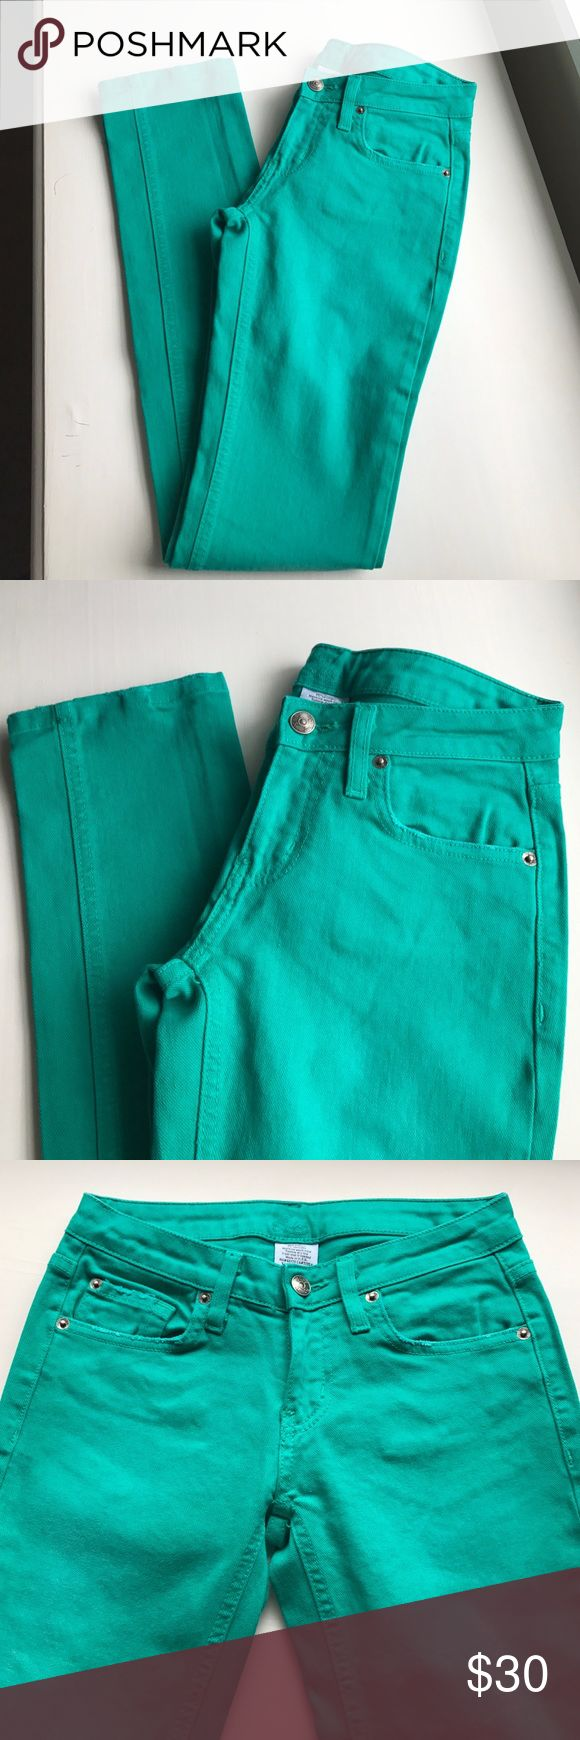 "Urban Outfitters green skinny jean Urban Outfitters green skinny mid rise jean (brand Lux) - 2nd pic is best depiction of shade of green - waist measures 13"" with 31"" inseam and 7"" rise - perfect condition never worn Urban Outfitters Jeans Skinny"